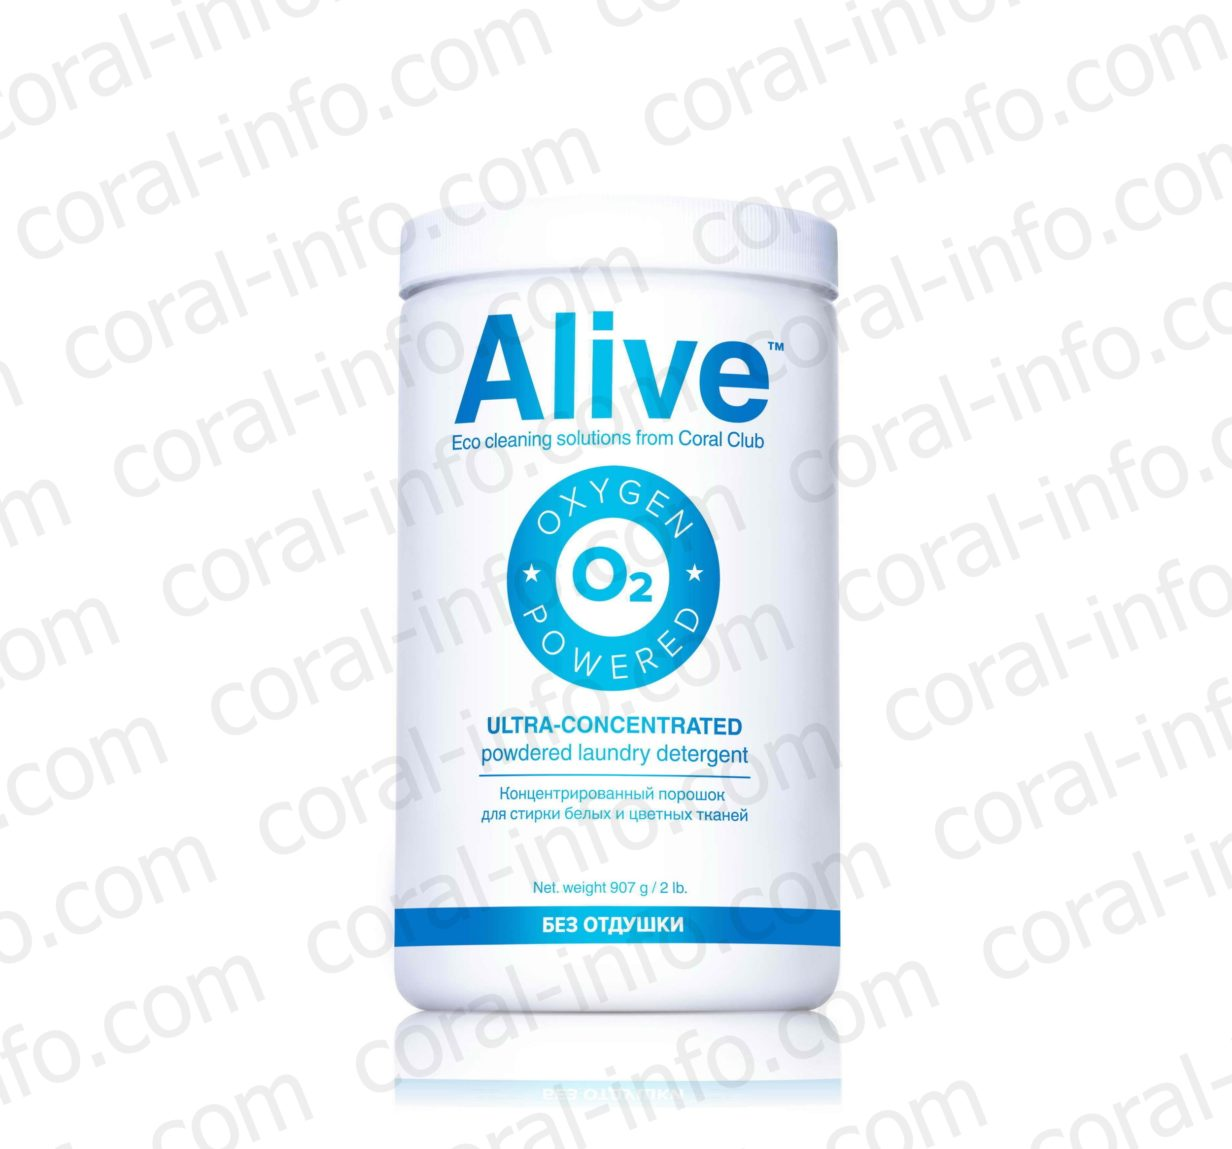 Alive laundry powder